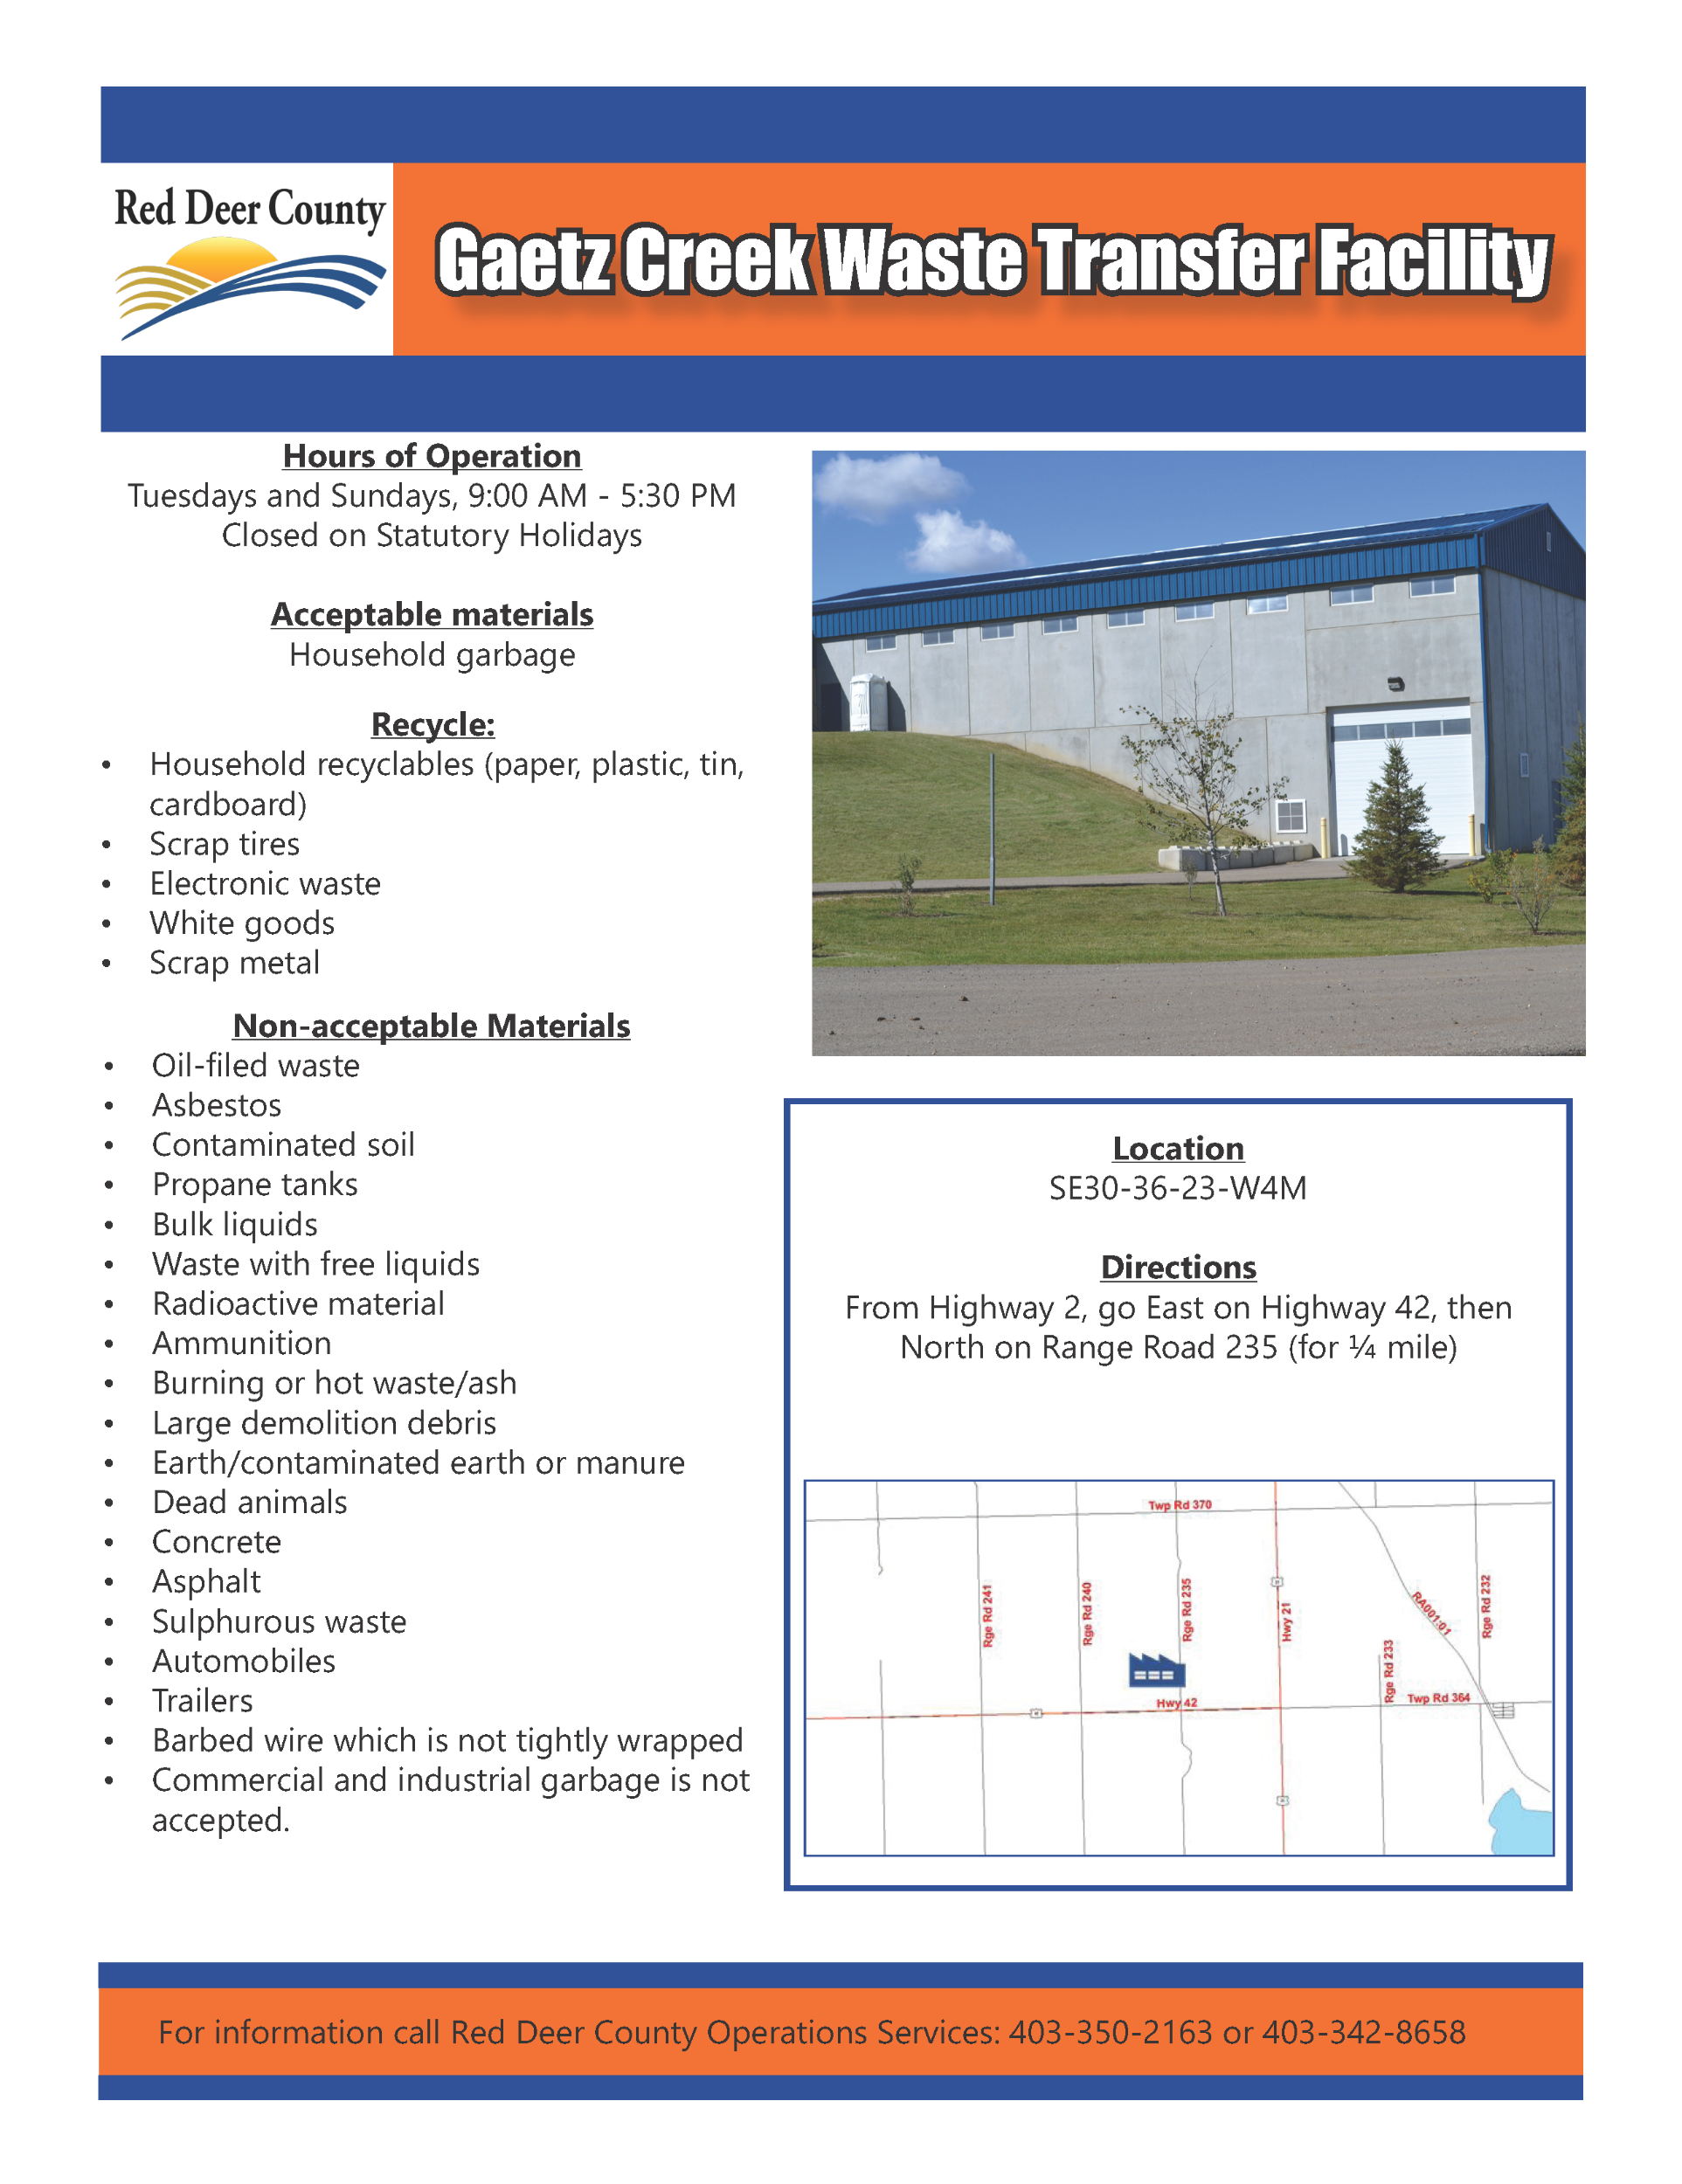 RD County - Gaetz Creek Waste Transfer Facility.png